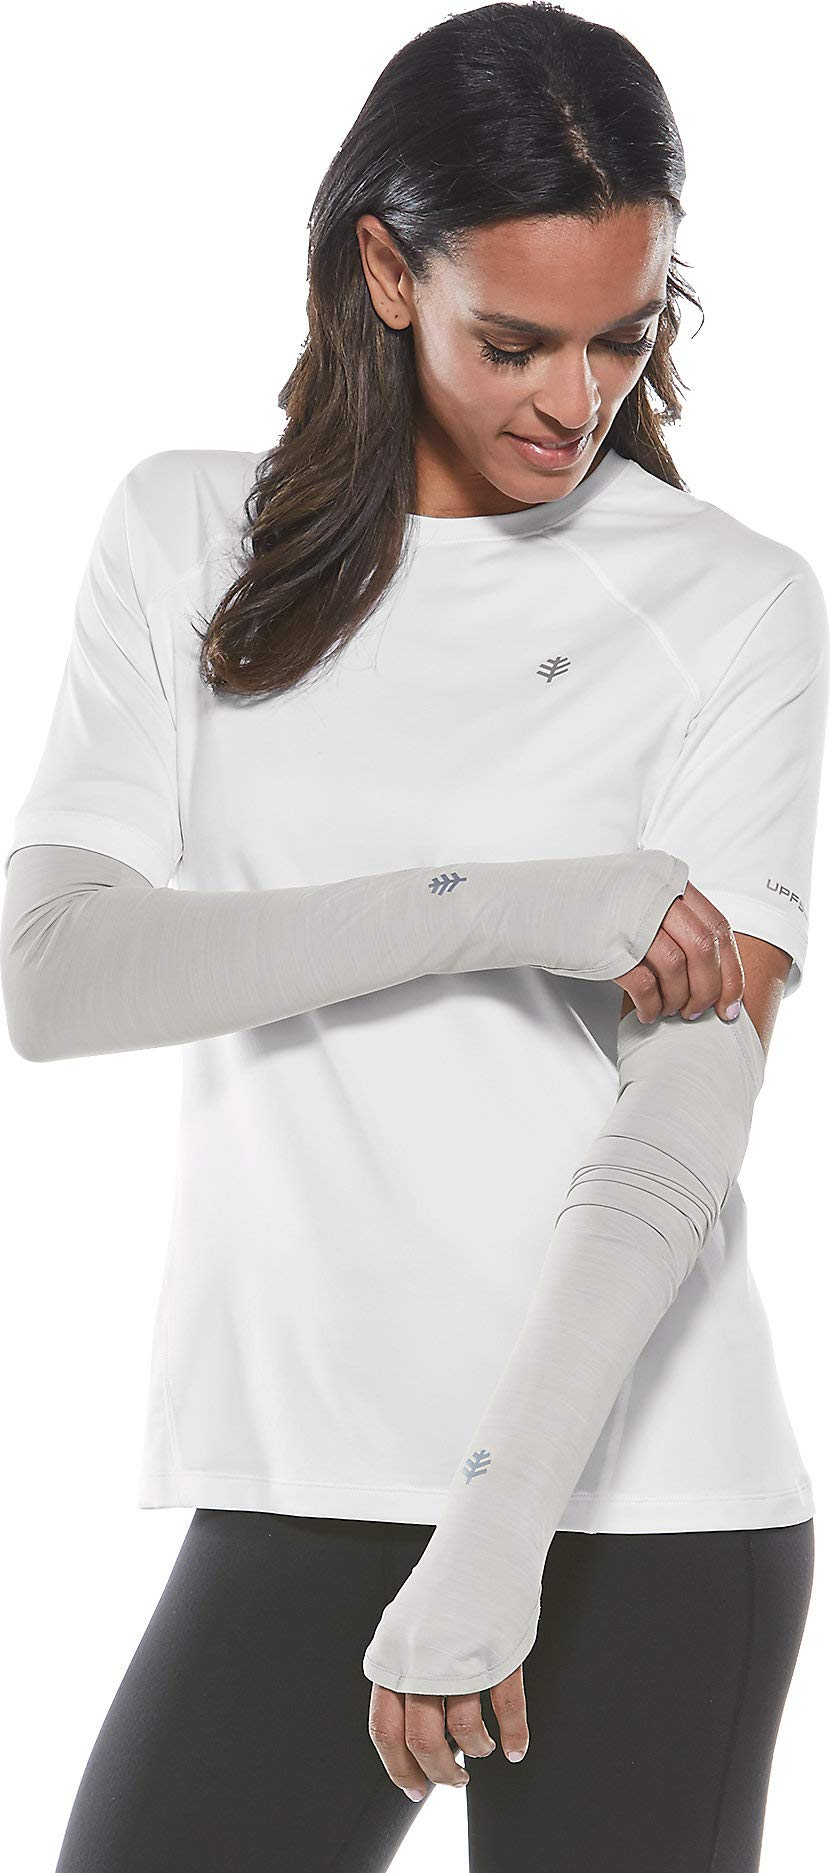 Coolibar UPF 50+ Women's Performance Sleeves - Sun Protective (Large/X-Large- Silver)